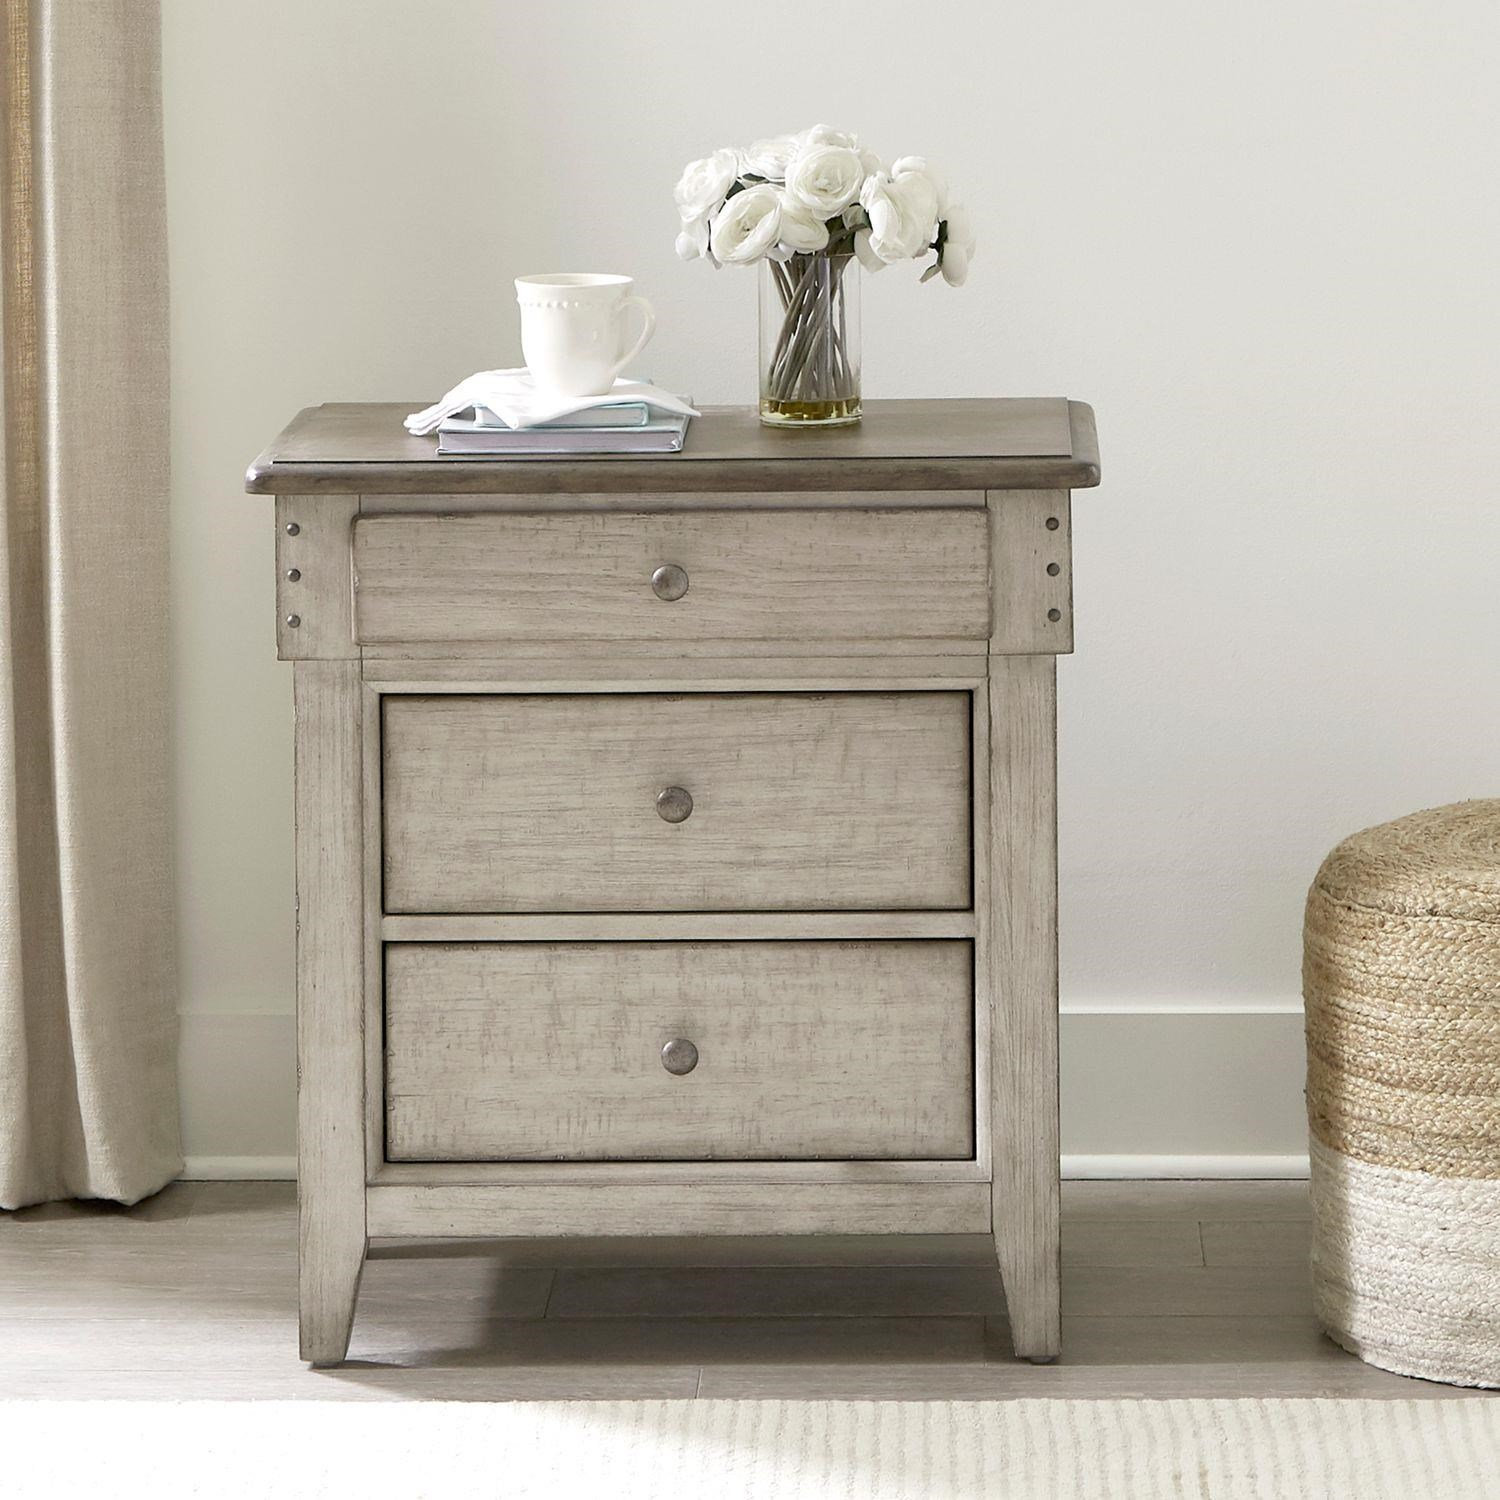 Ivy Hollow 3 Drawer Nightstand by Liberty Furniture at Johnny Janosik